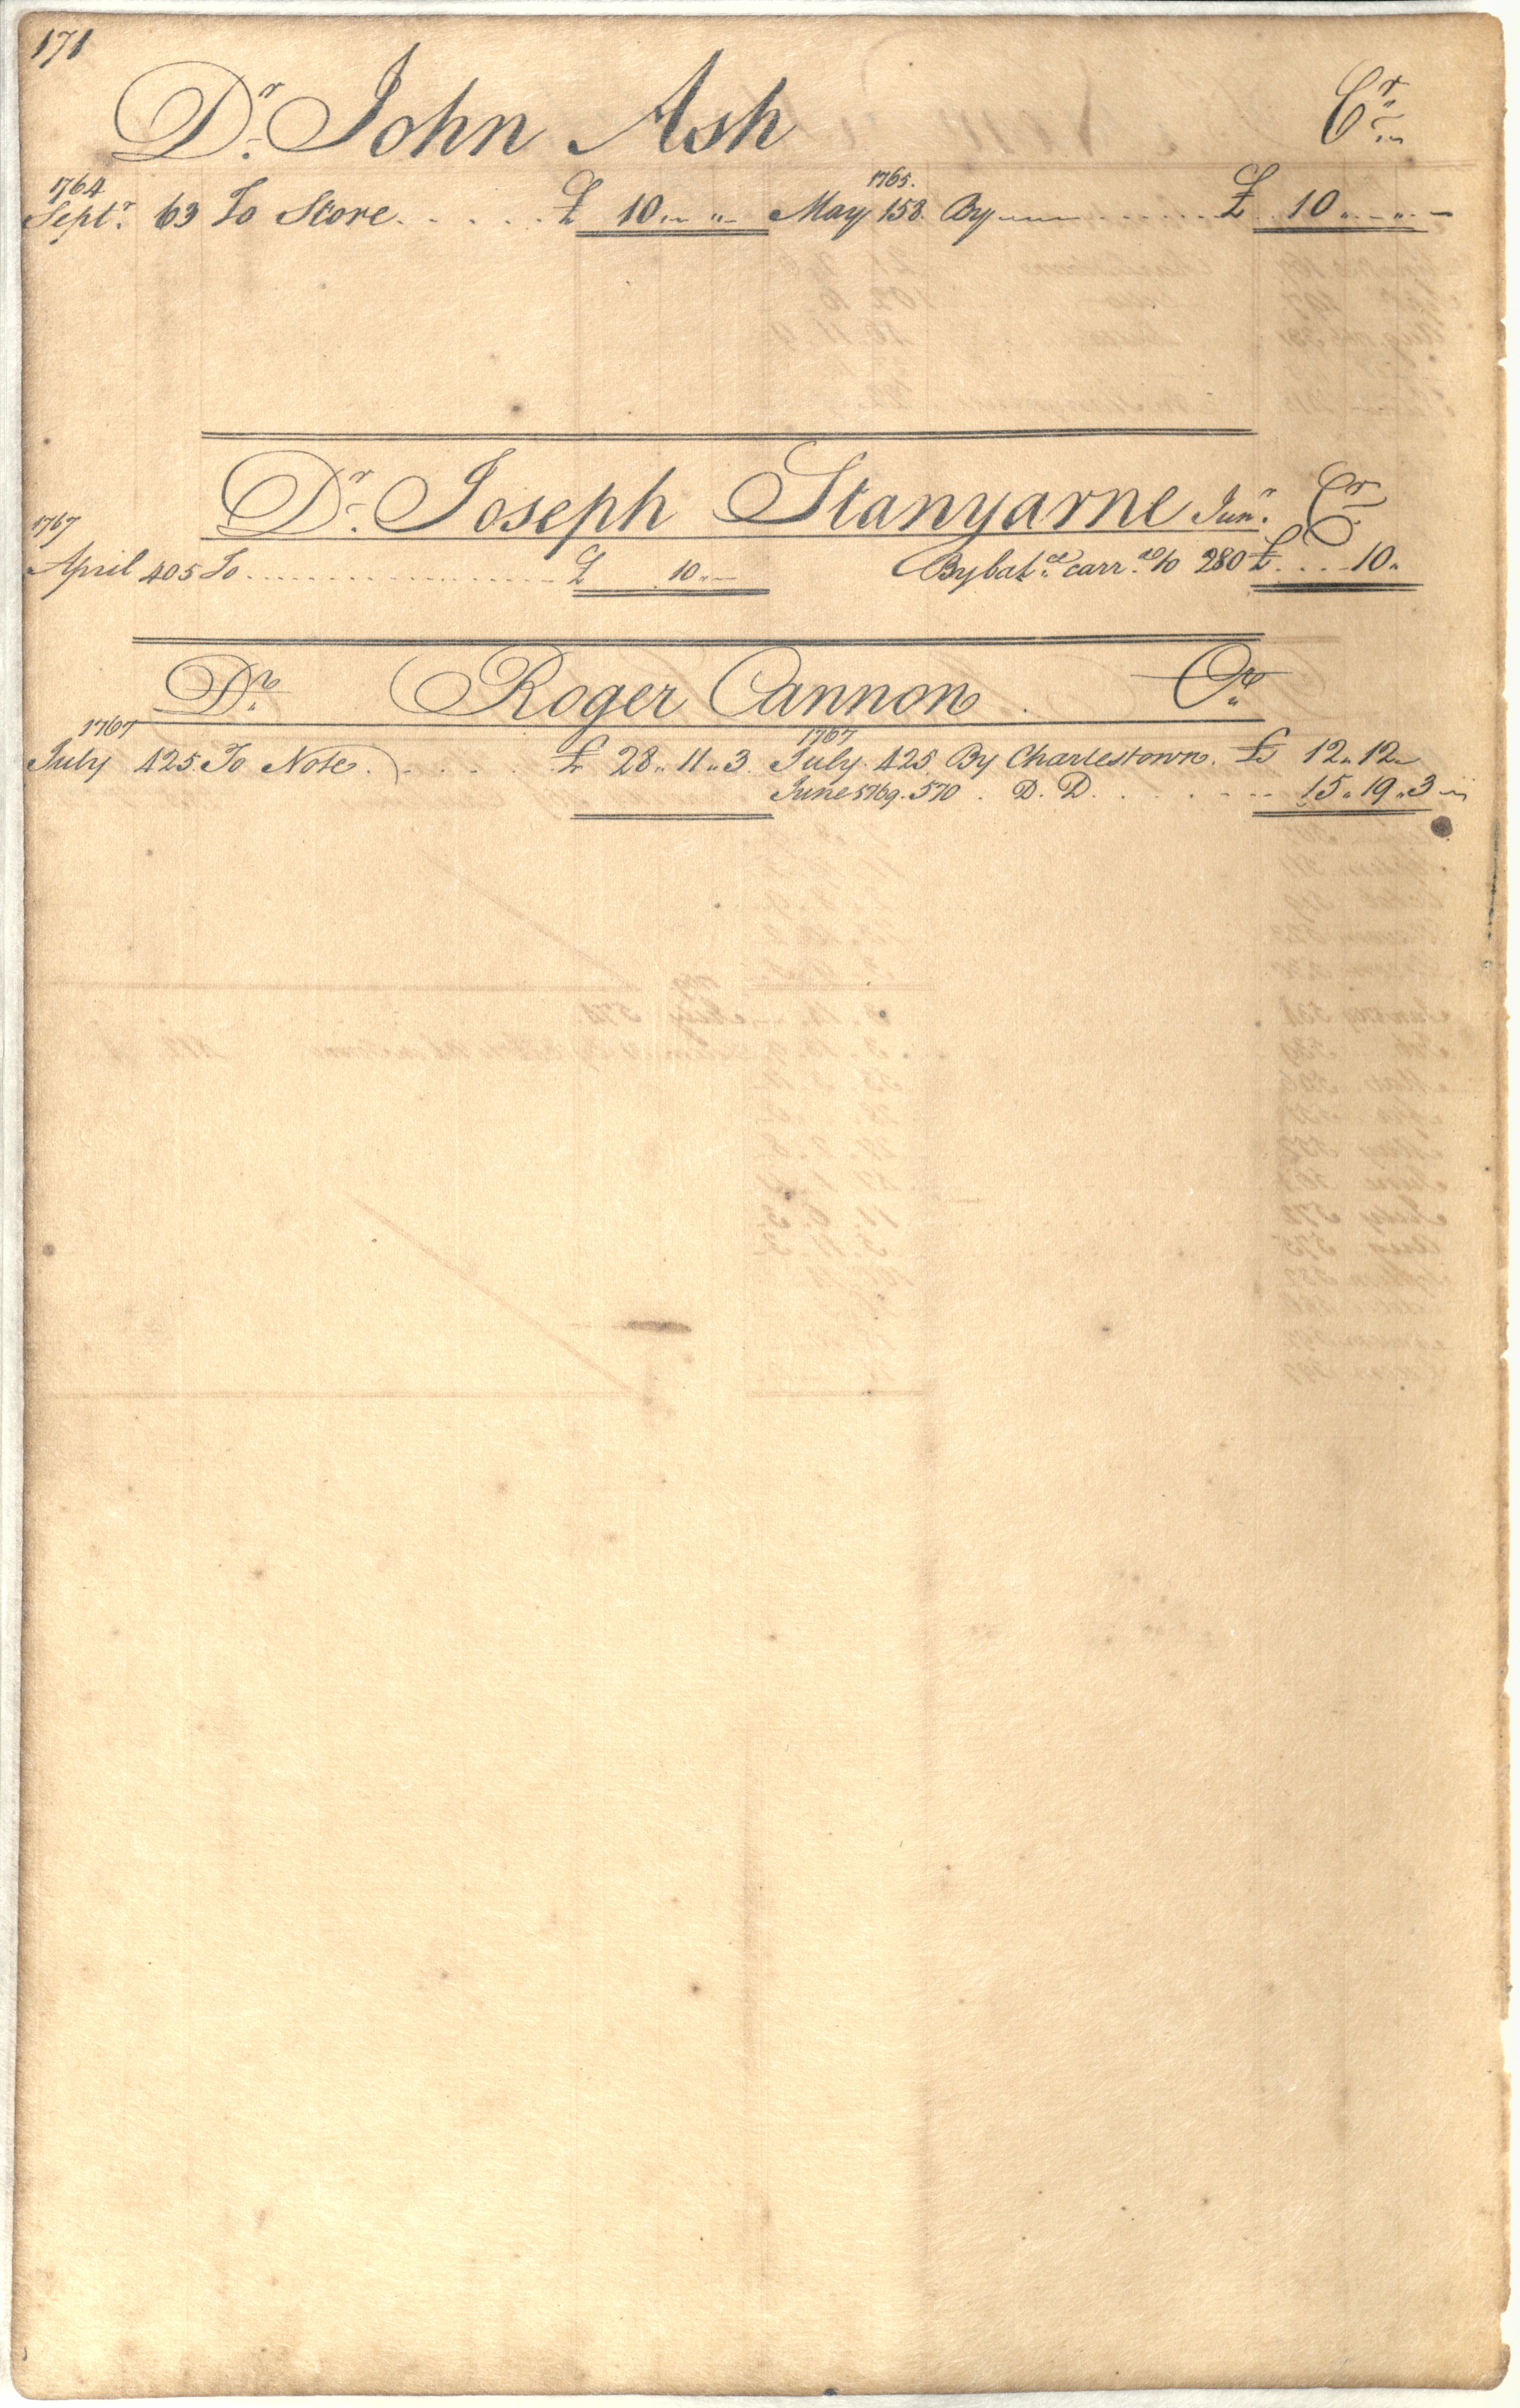 Plowden Weston's Business Ledger, page 171